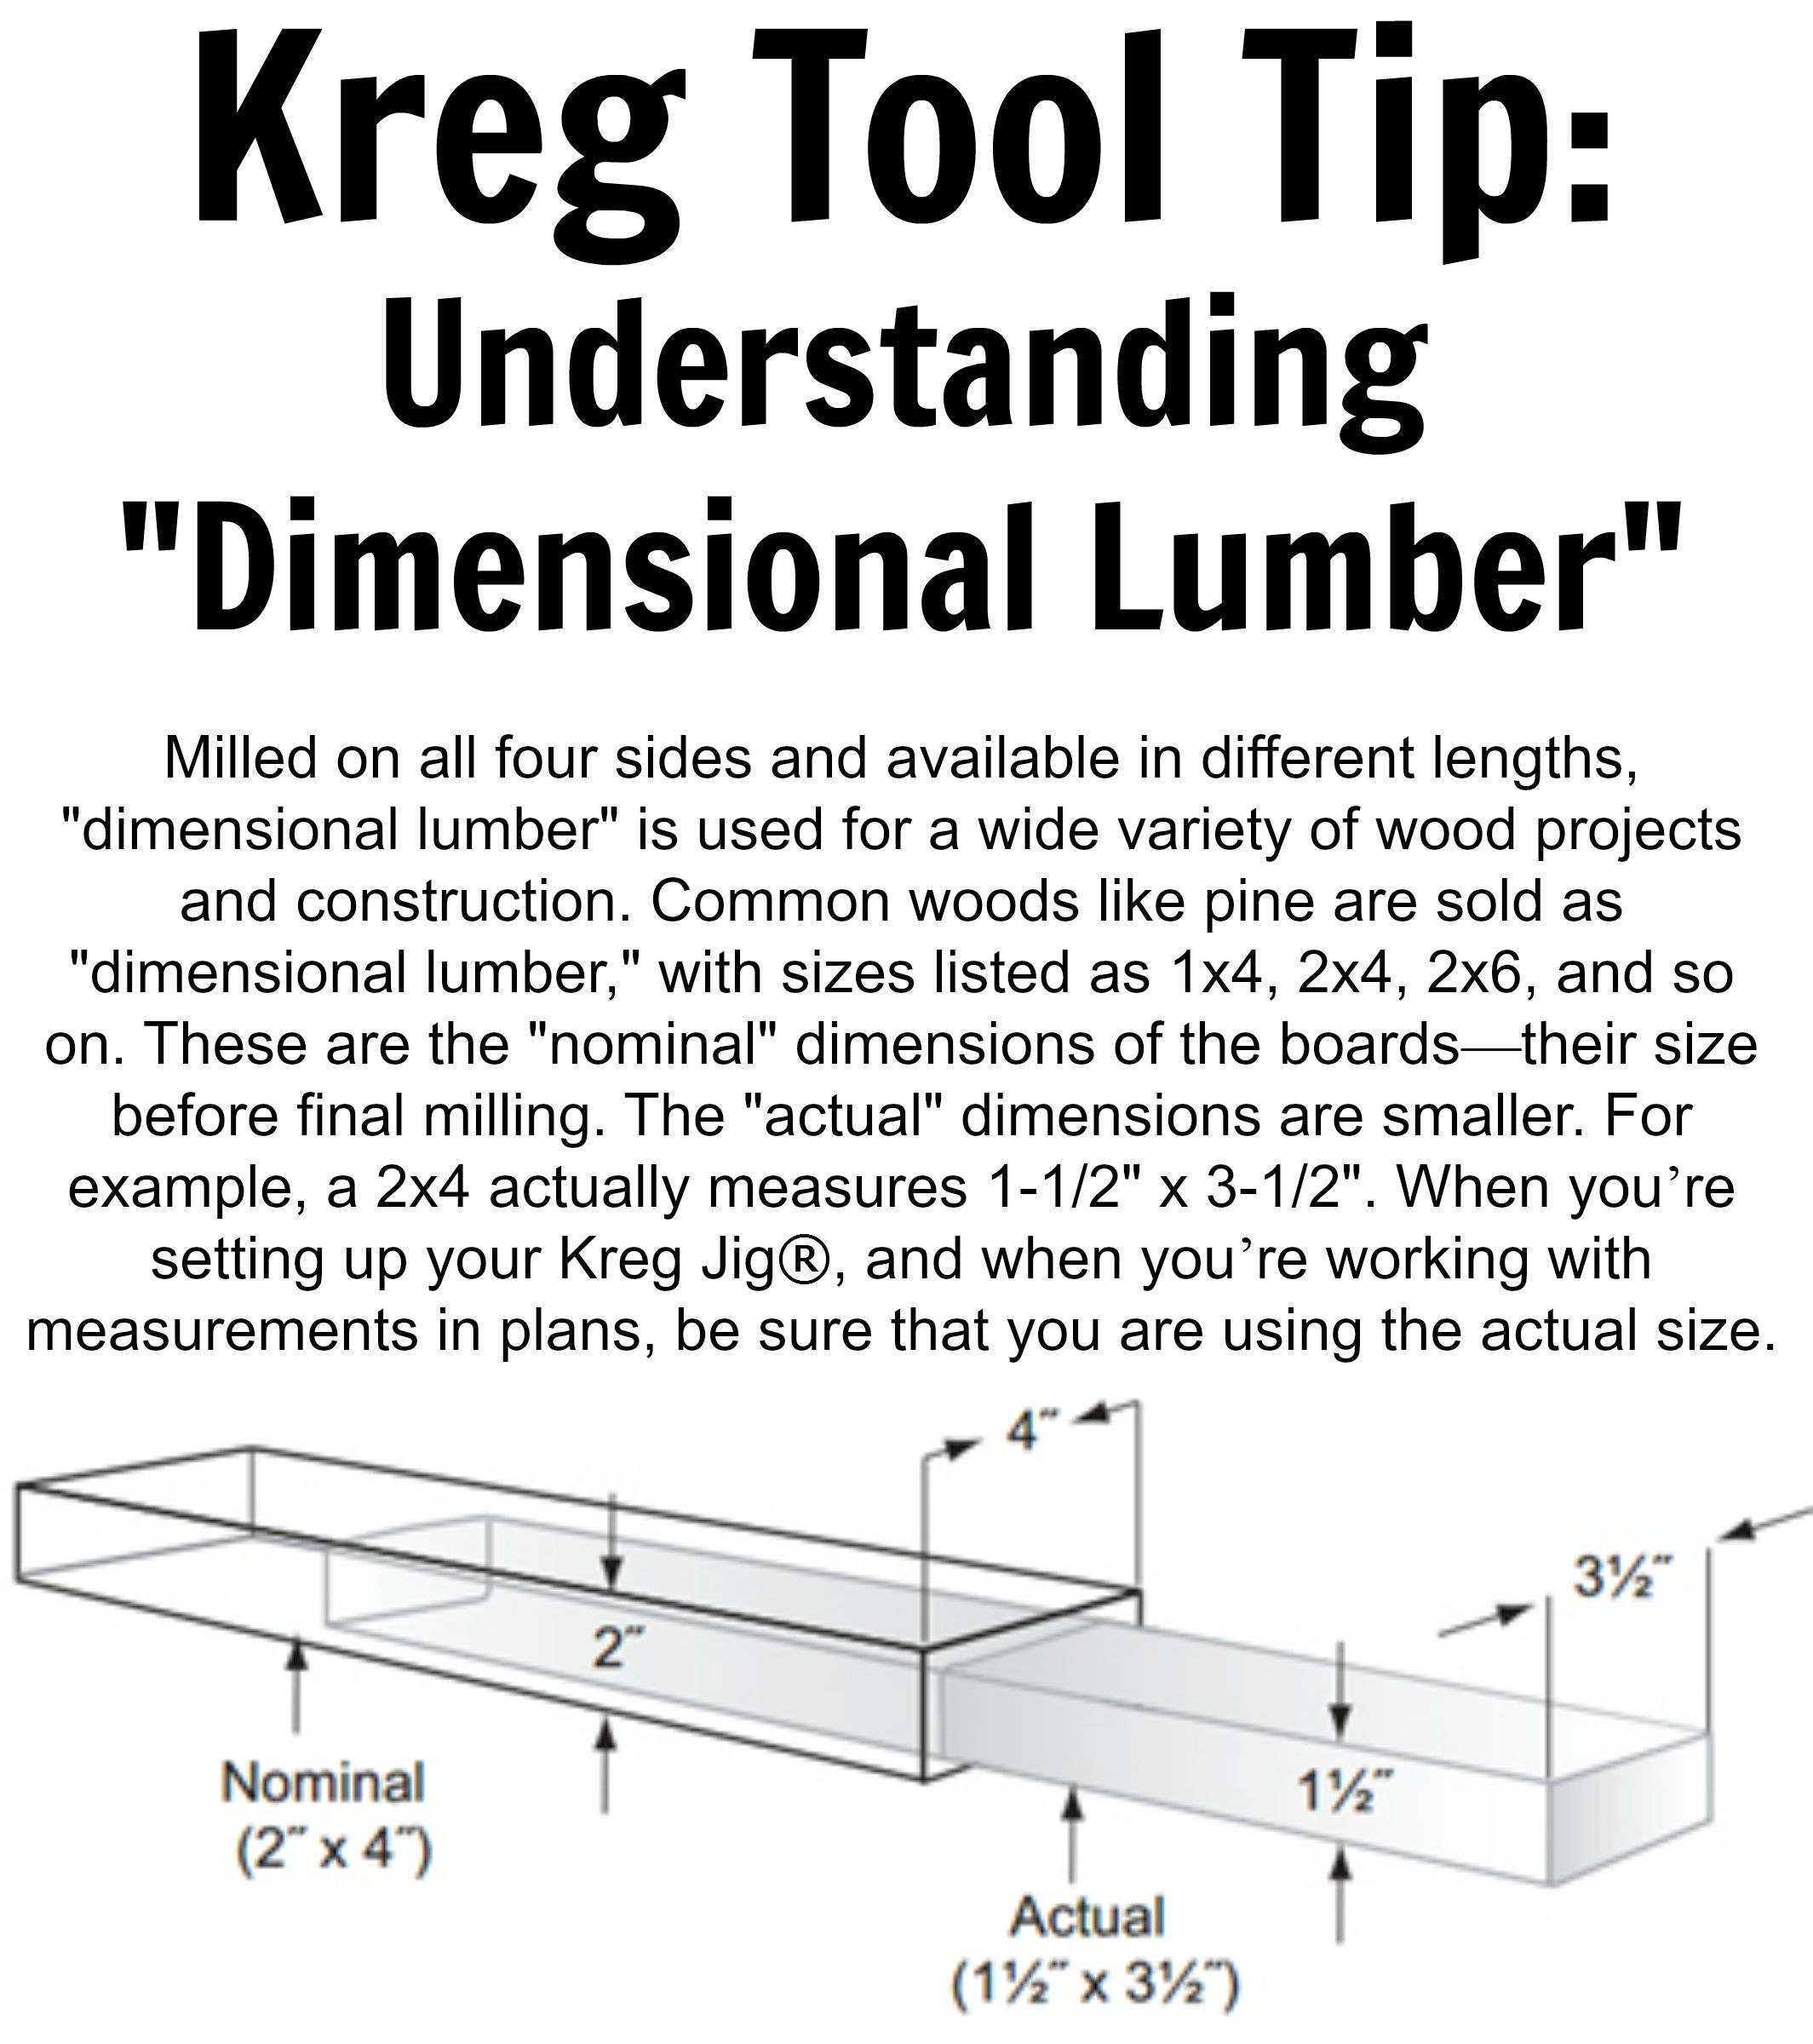 Kreg Jig Different Thickness Pocket Hole Placement According To Thickness Of Wood Kreg Jig